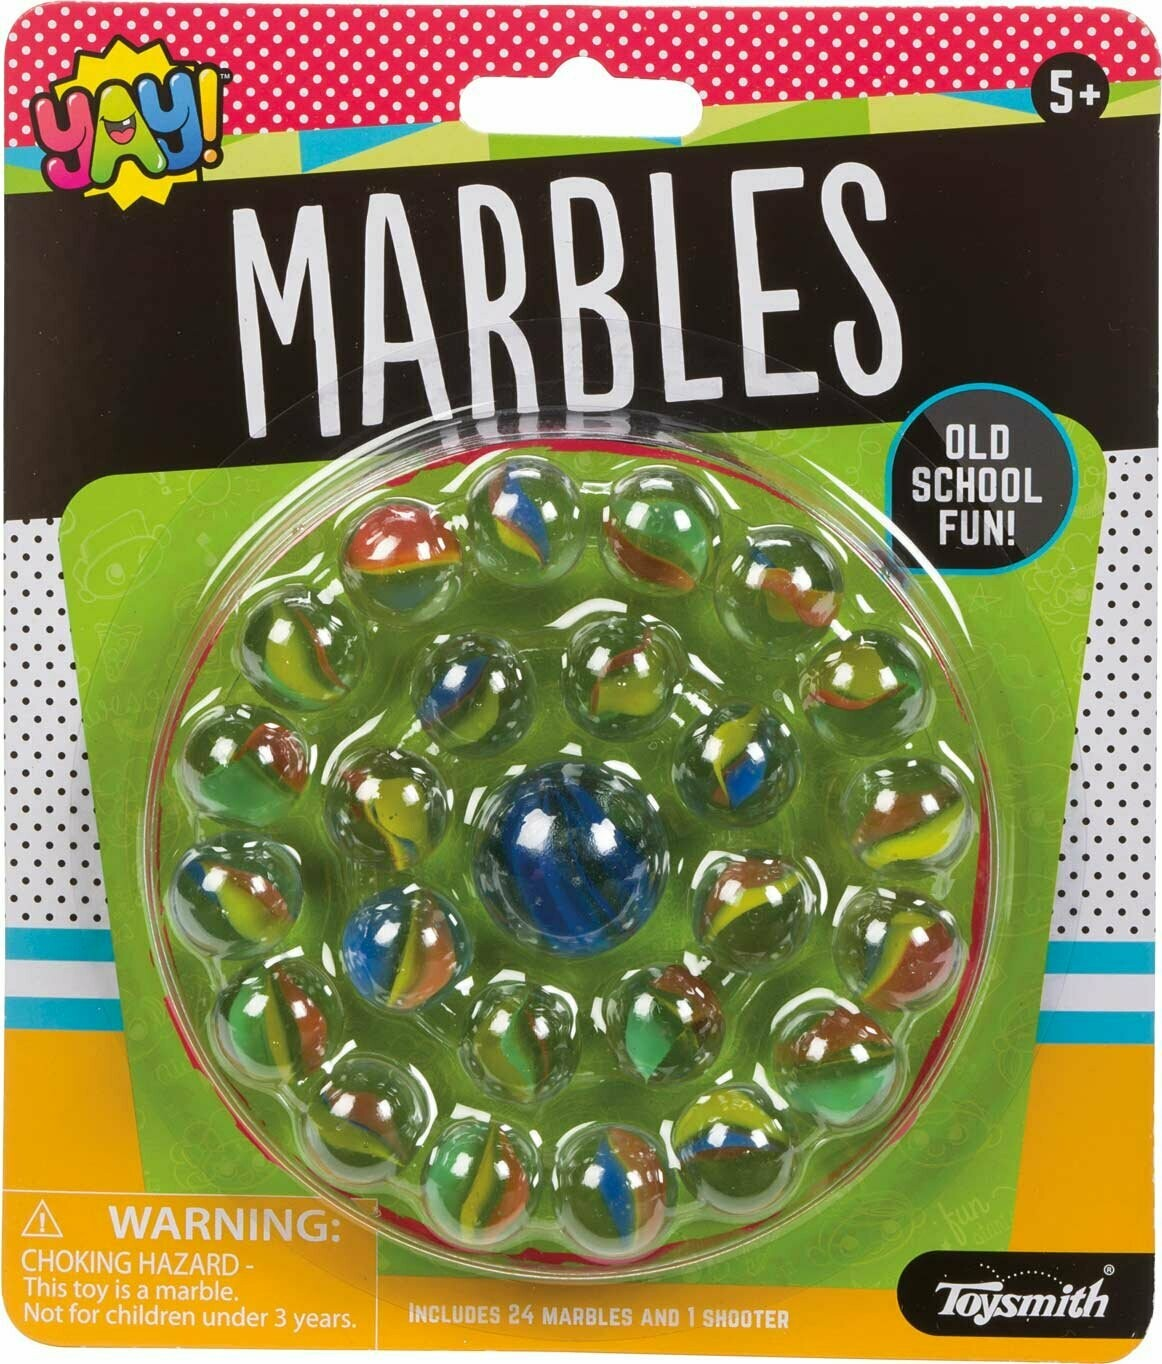 Yay! Marbles